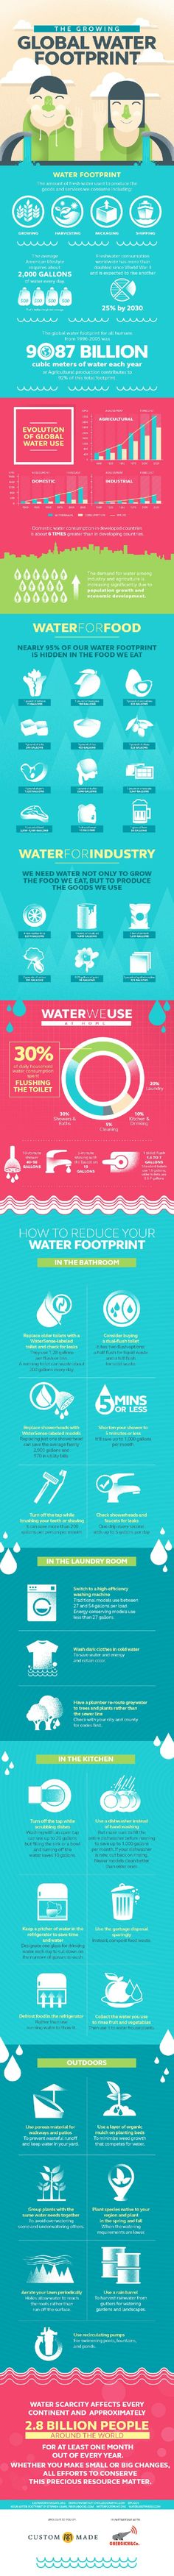 Easy Water Saving Tips to Save You Money - http://www.mommygreenest.com/easy-water-saving-tips-to-save-you-money/